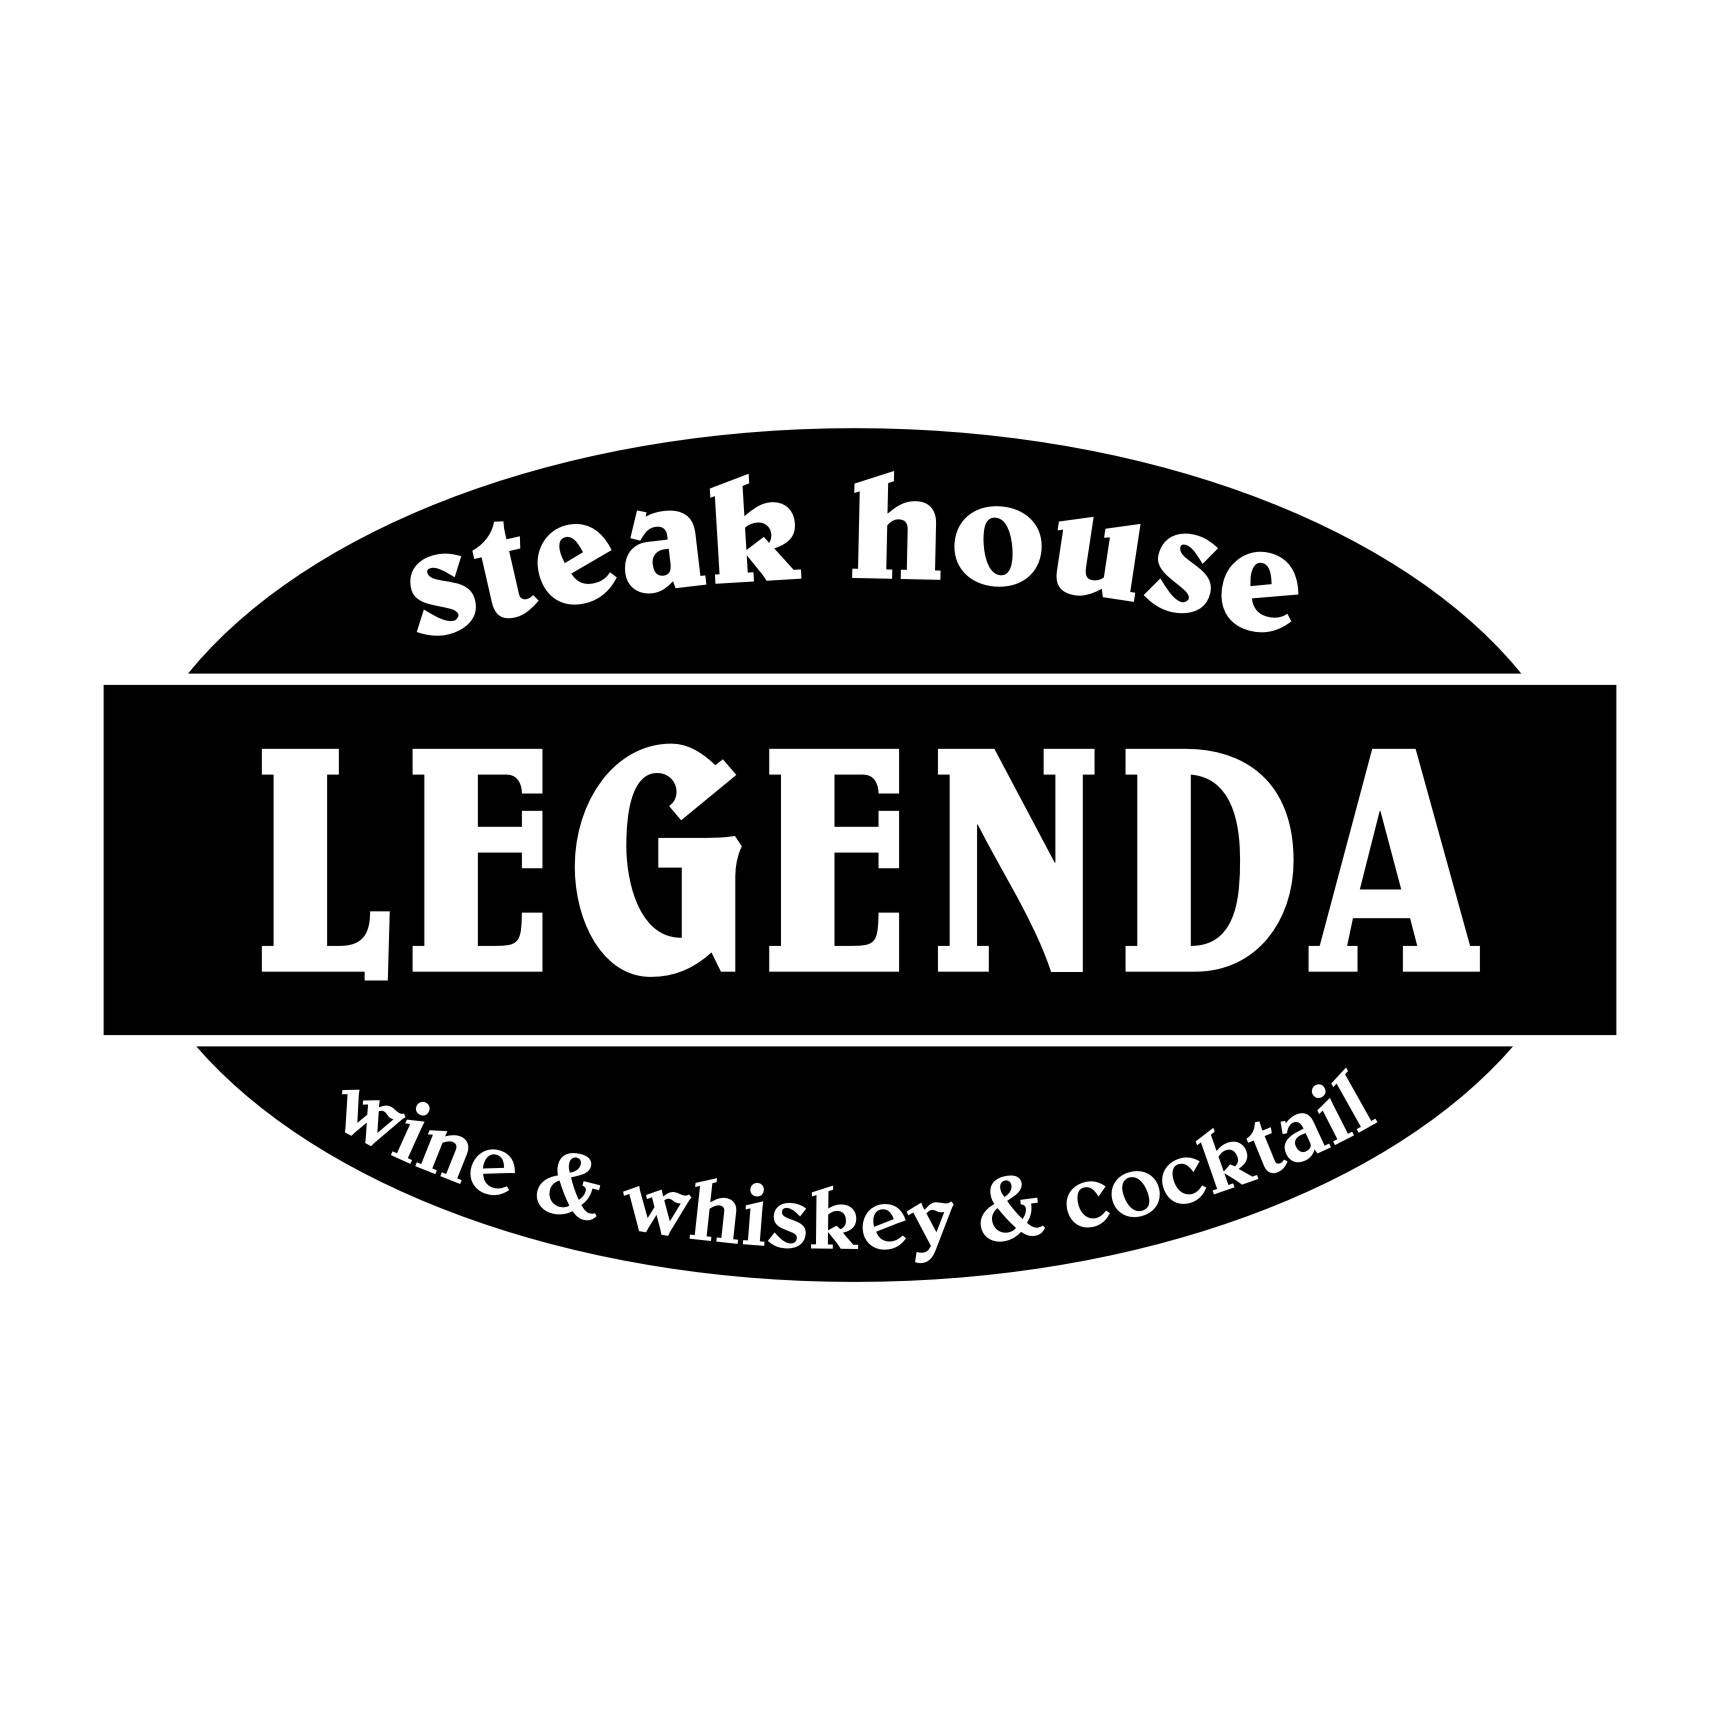 Legenda Steak House